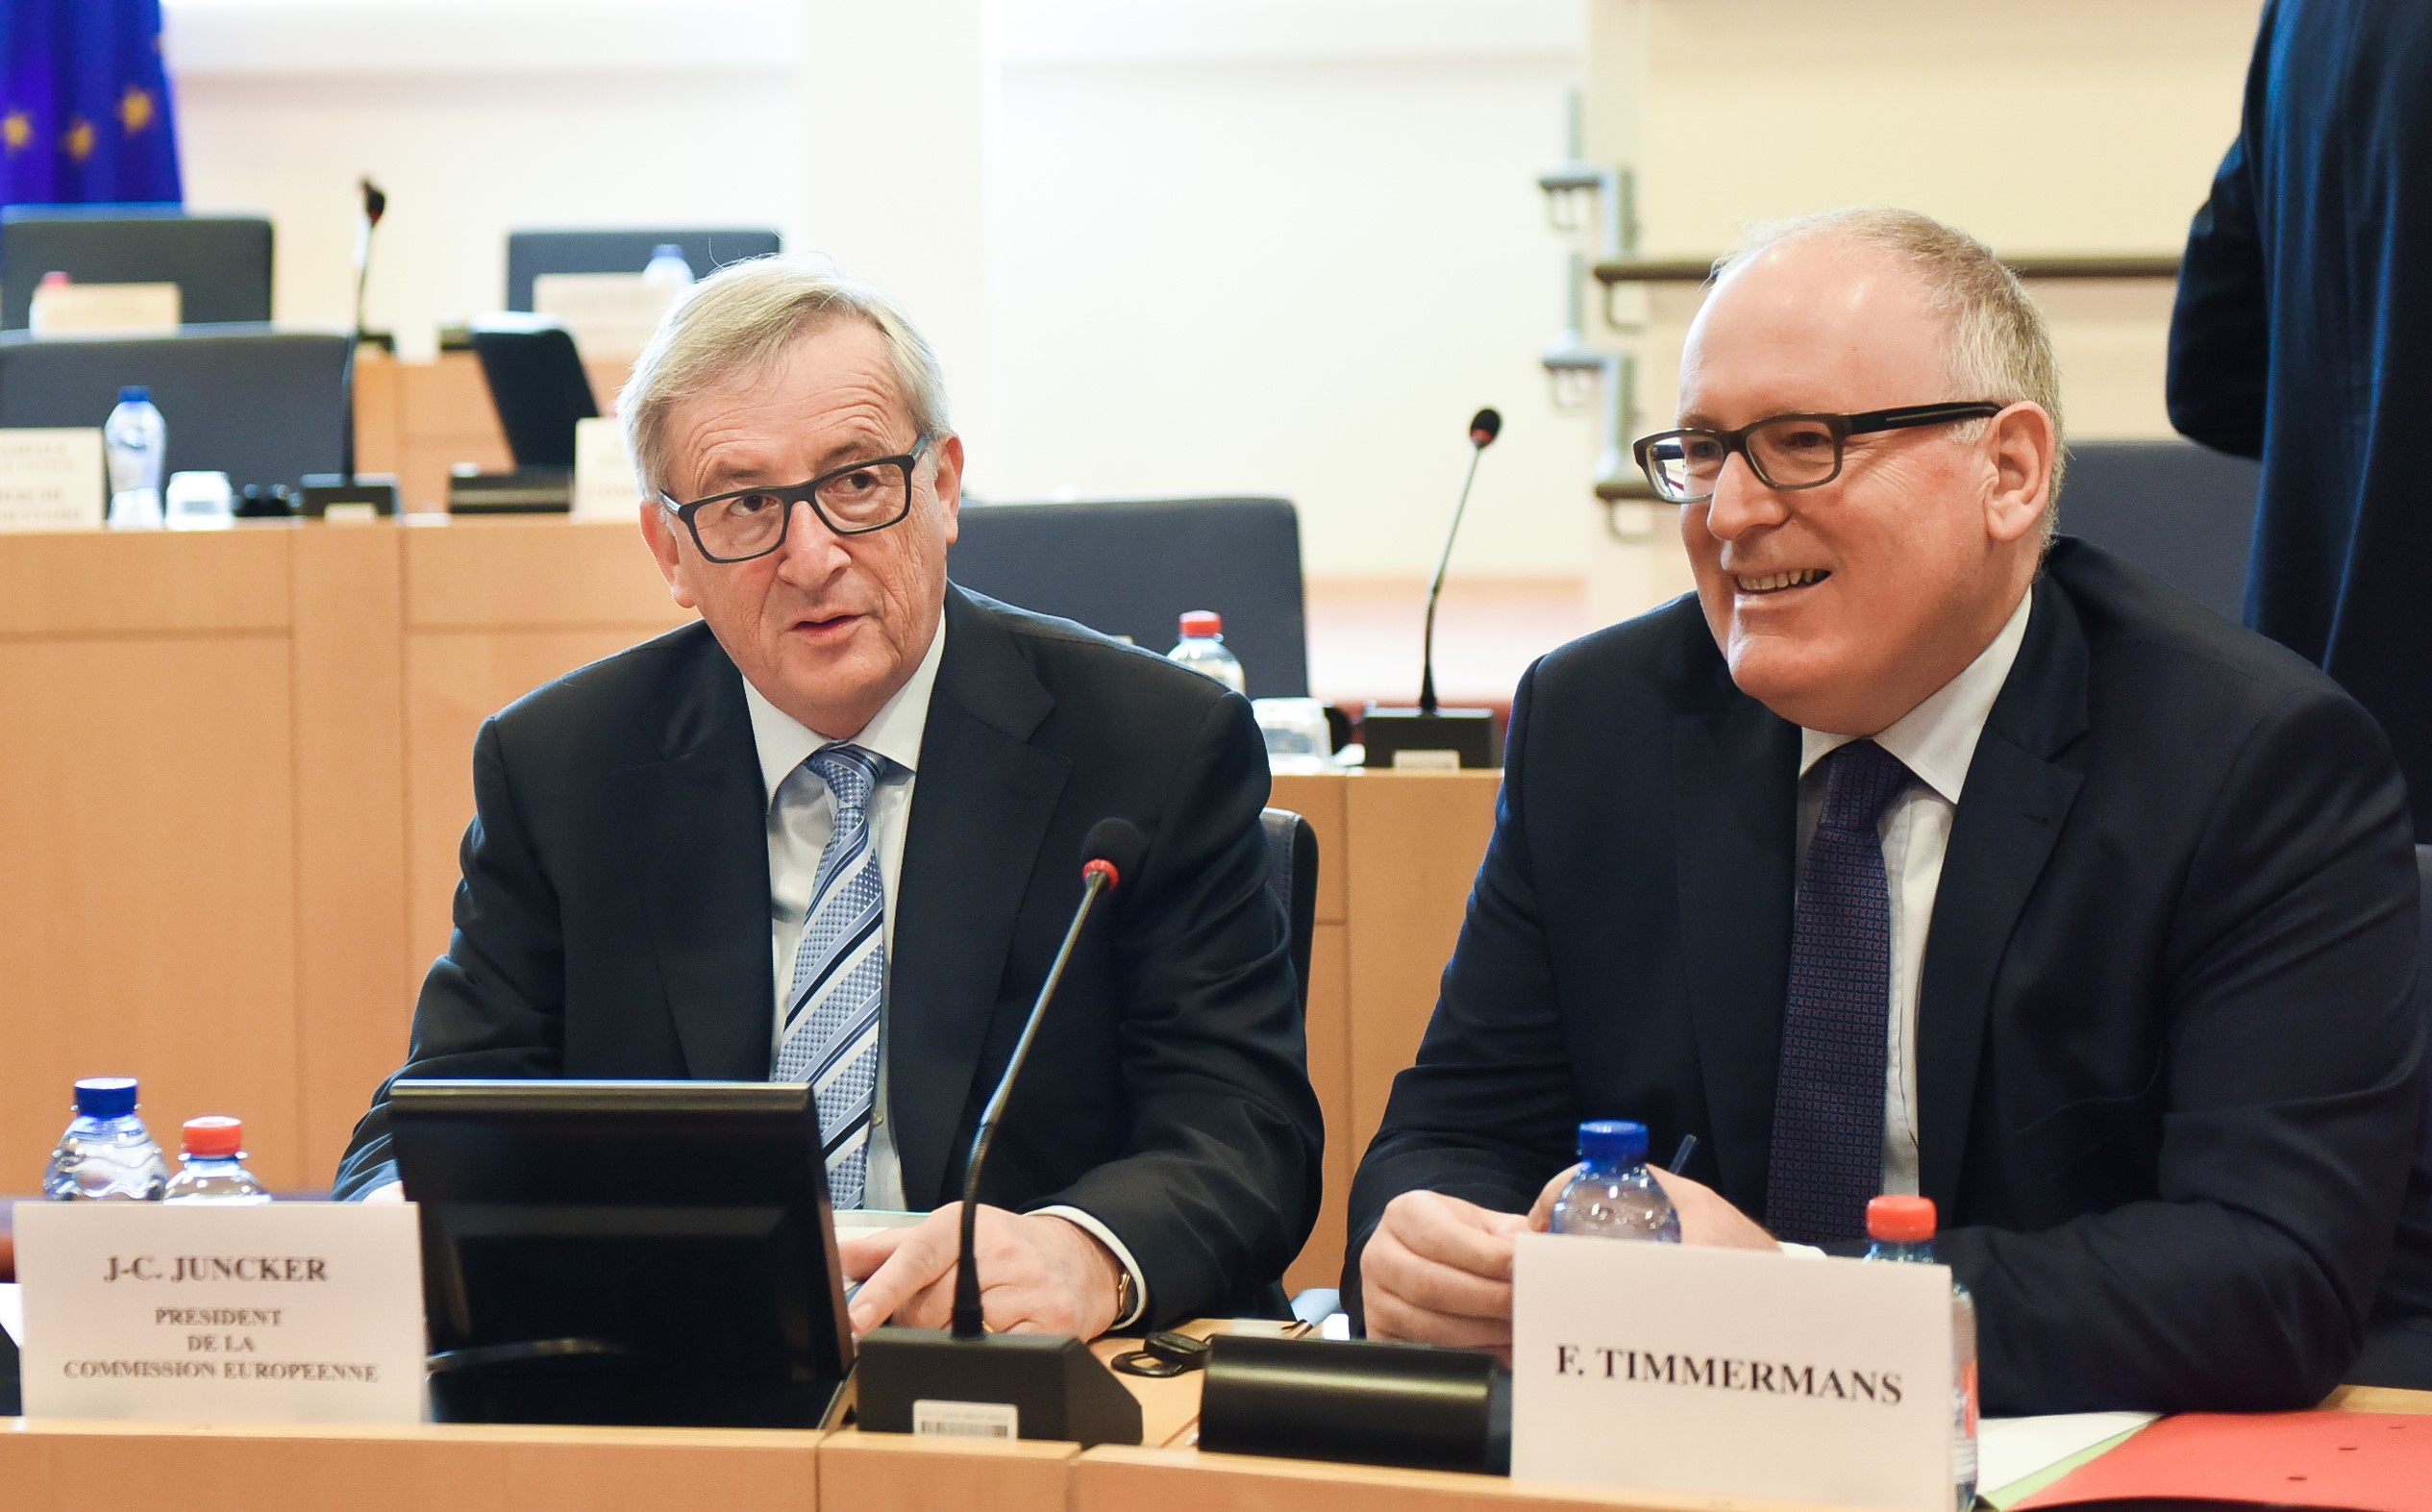 Jean-Claude Juncker, on the left, and Frans Timmermans, photo source: European Commission, photo taken by Jennifer Jecquemart